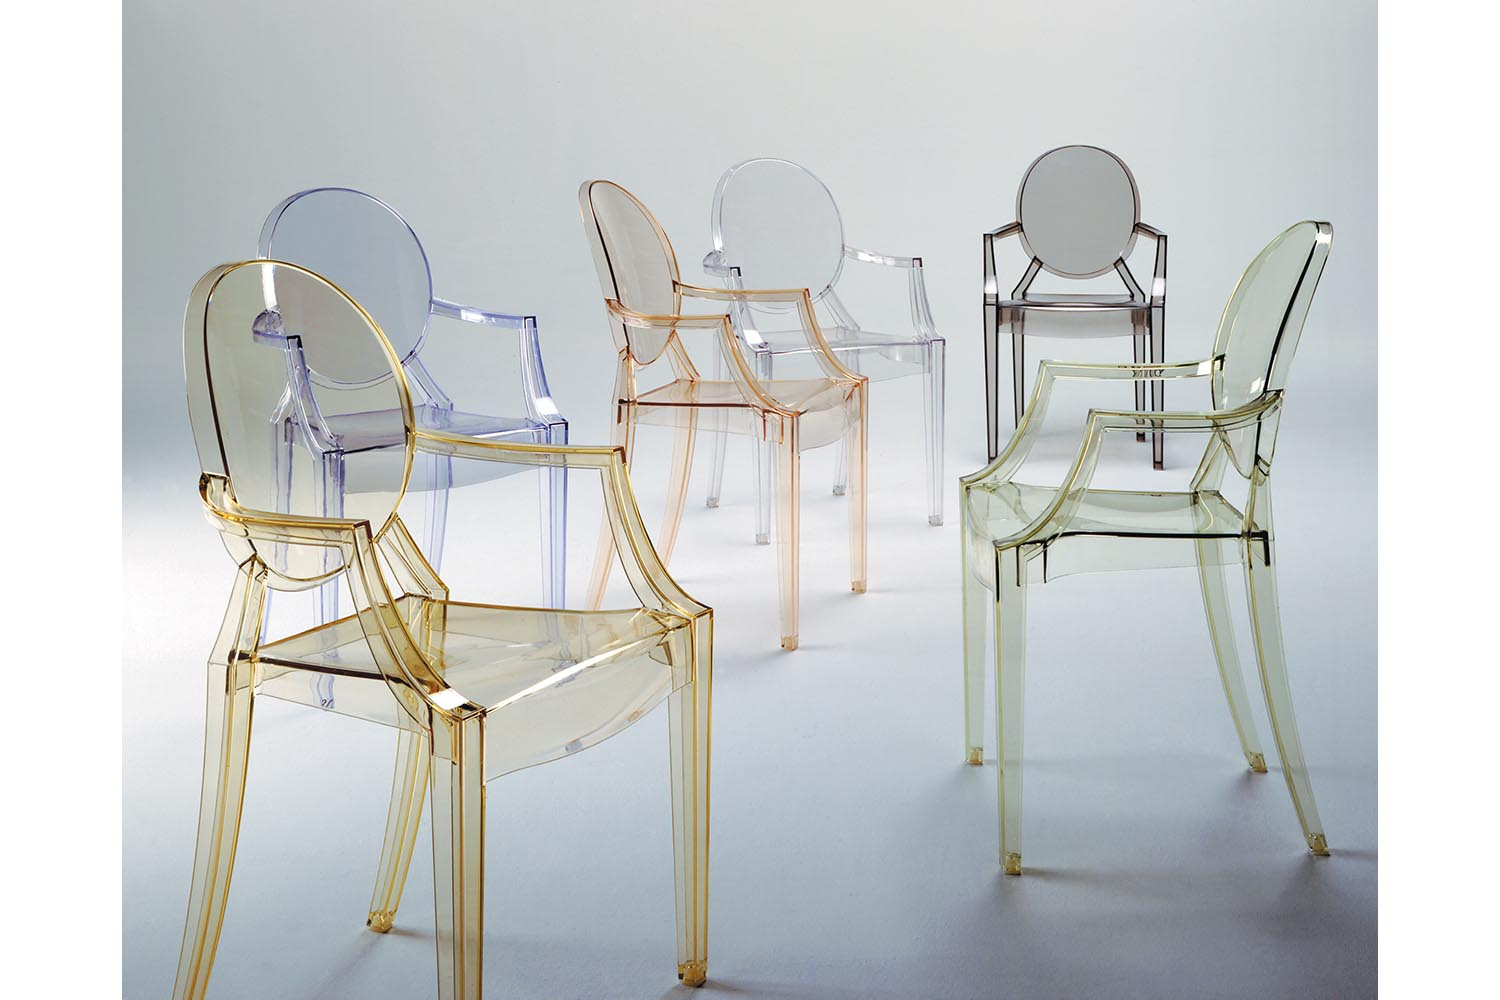 cushions for ghost chairs high backed office uk louis chair with arms by philippe starck kartell